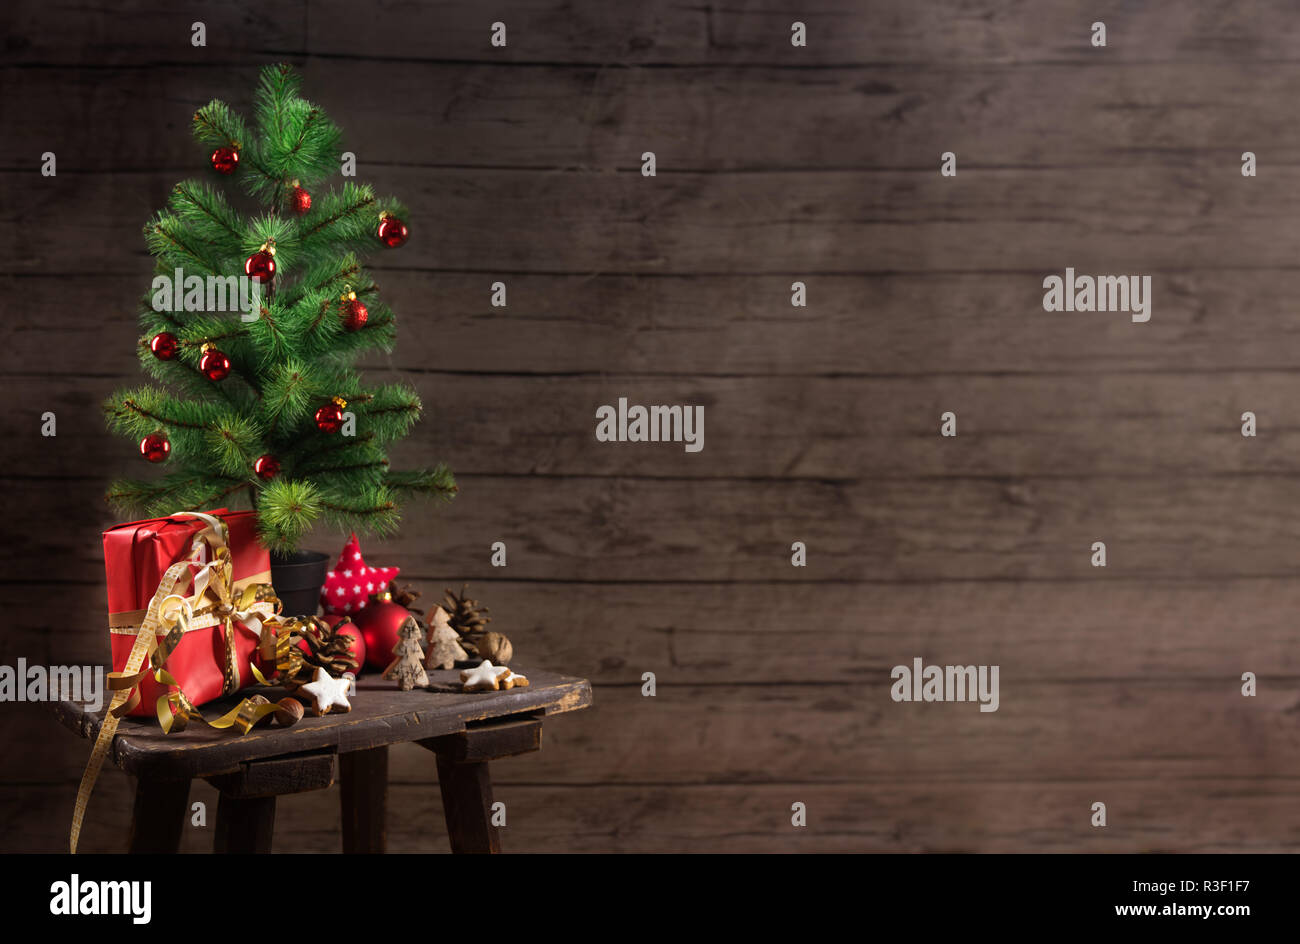 Miraculous Artificial Christmas Tree With Red Baubles T Box And Home Interior And Landscaping Ologienasavecom